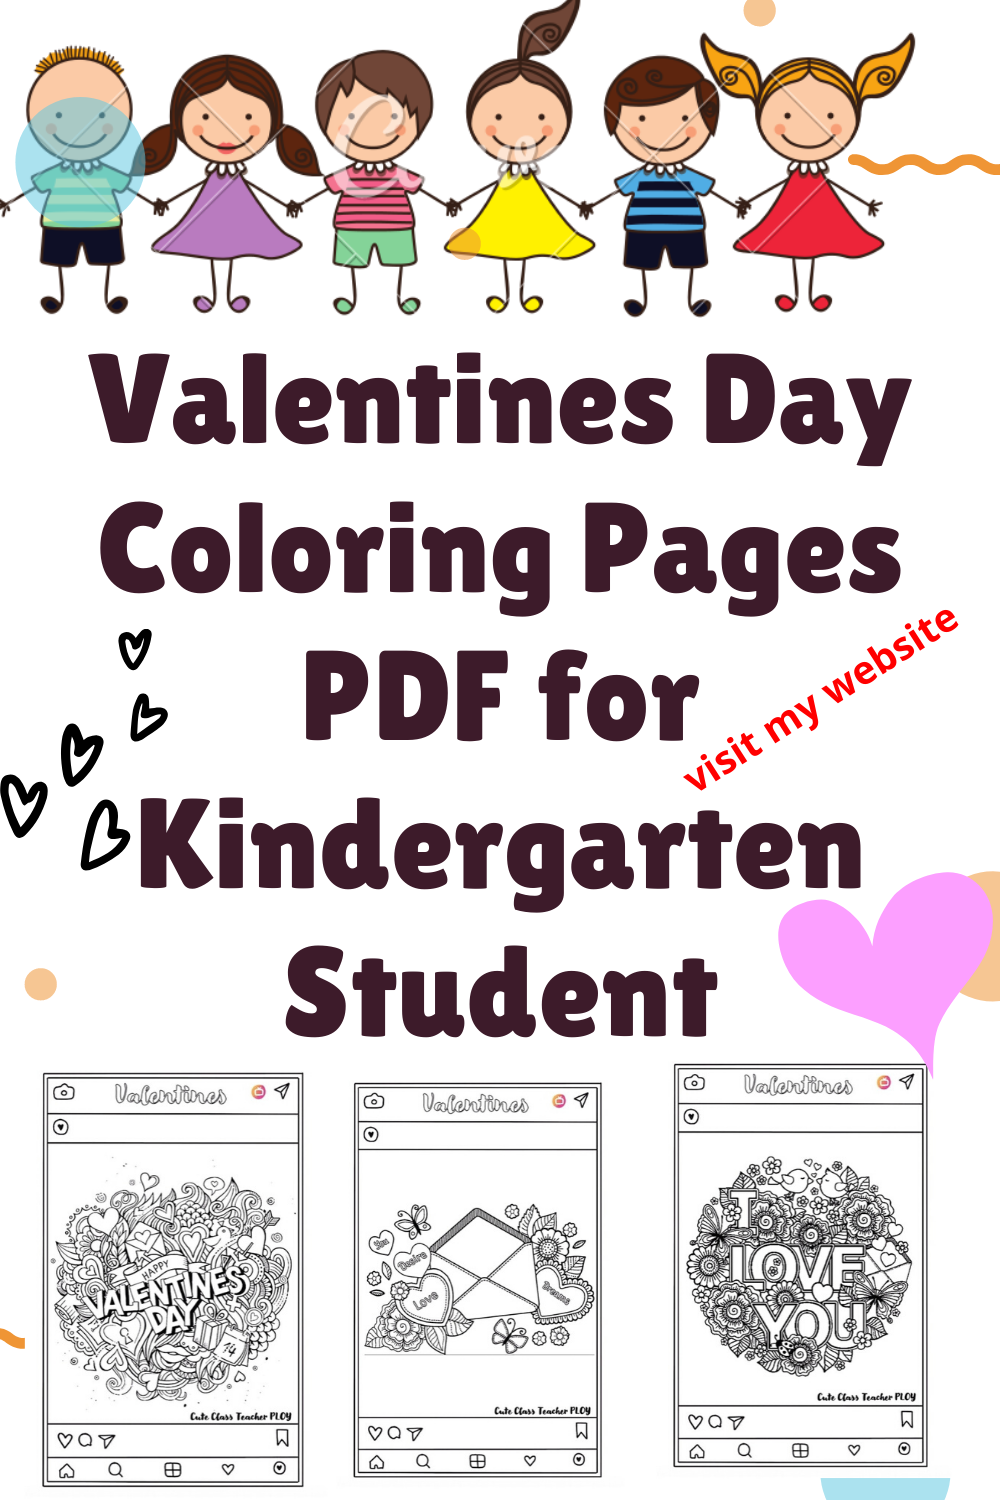 Valentines Day Coloring Pages Pdf For Kindergarten Student